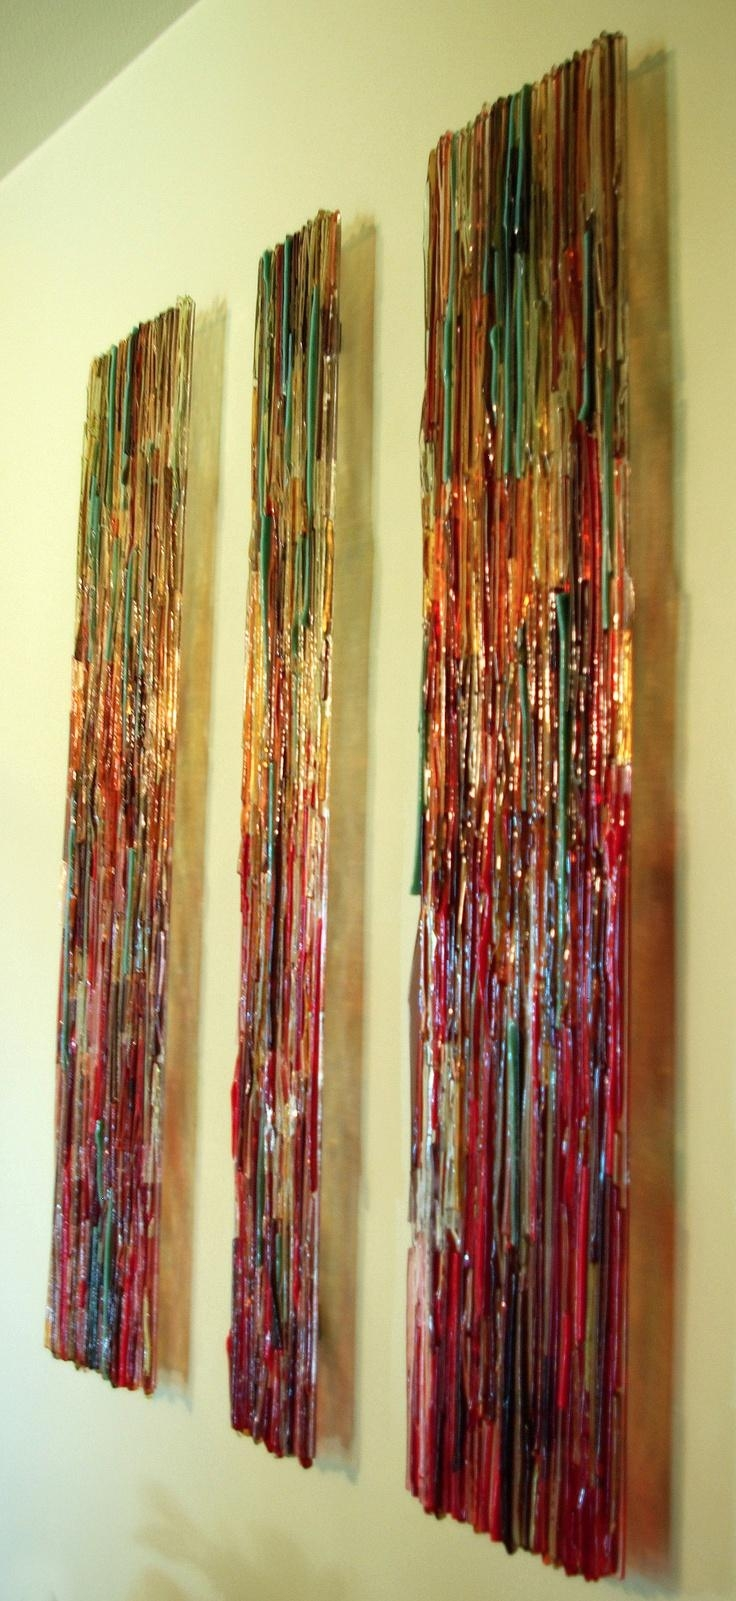 25+ Best Glass Wall Art Ideas On Pinterest | Glass Art, Fused For Glass Wall Artworks (View 1 of 20)